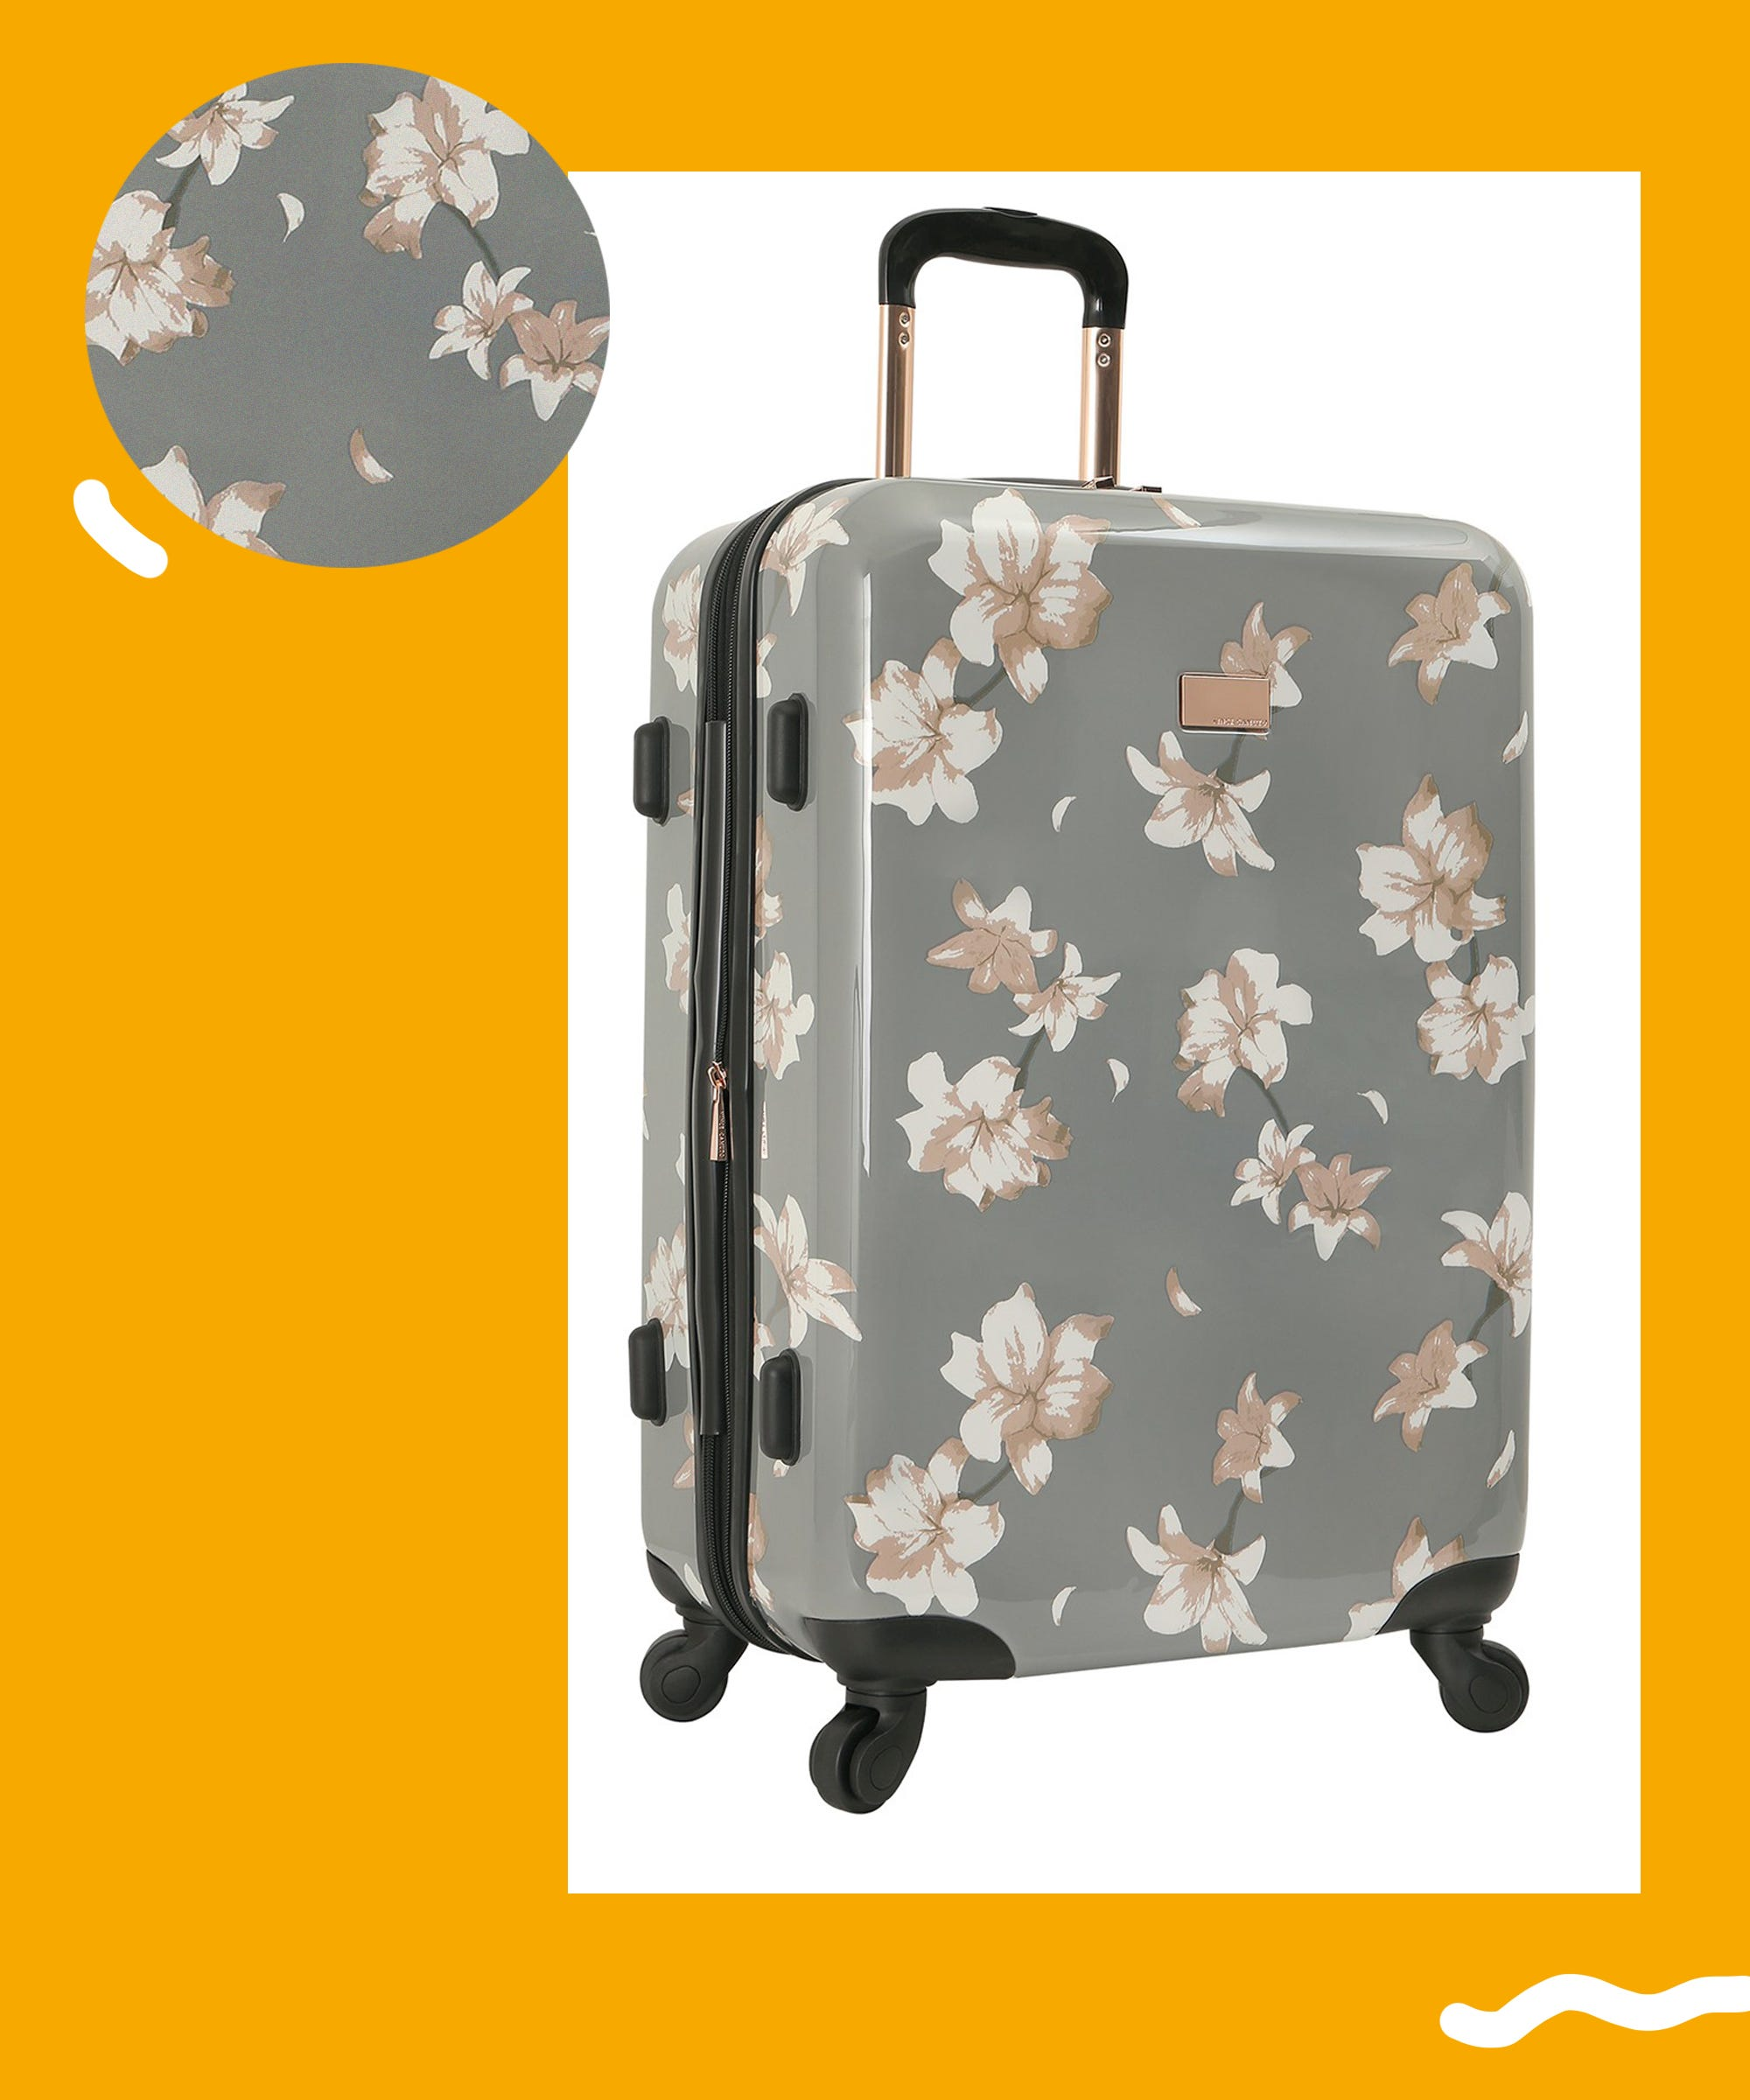 Luggage Deals For Black Friday 2018 Suitcases On Sale